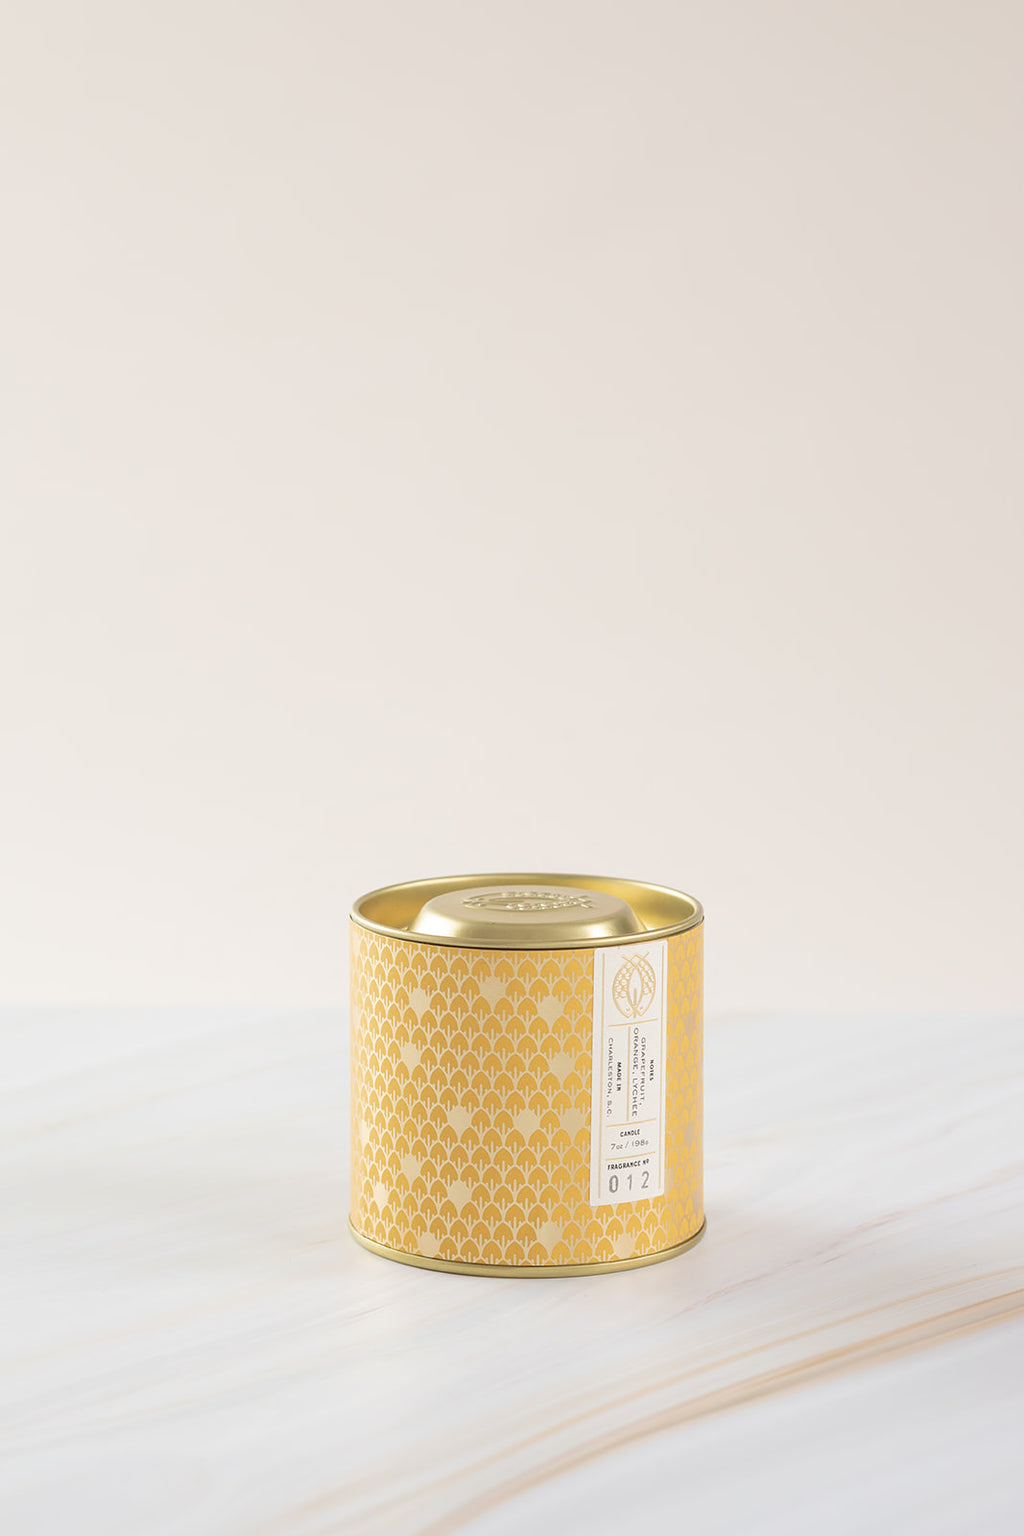 Candlefish No. 12 Gold 7oz Tin with Embossed Lid